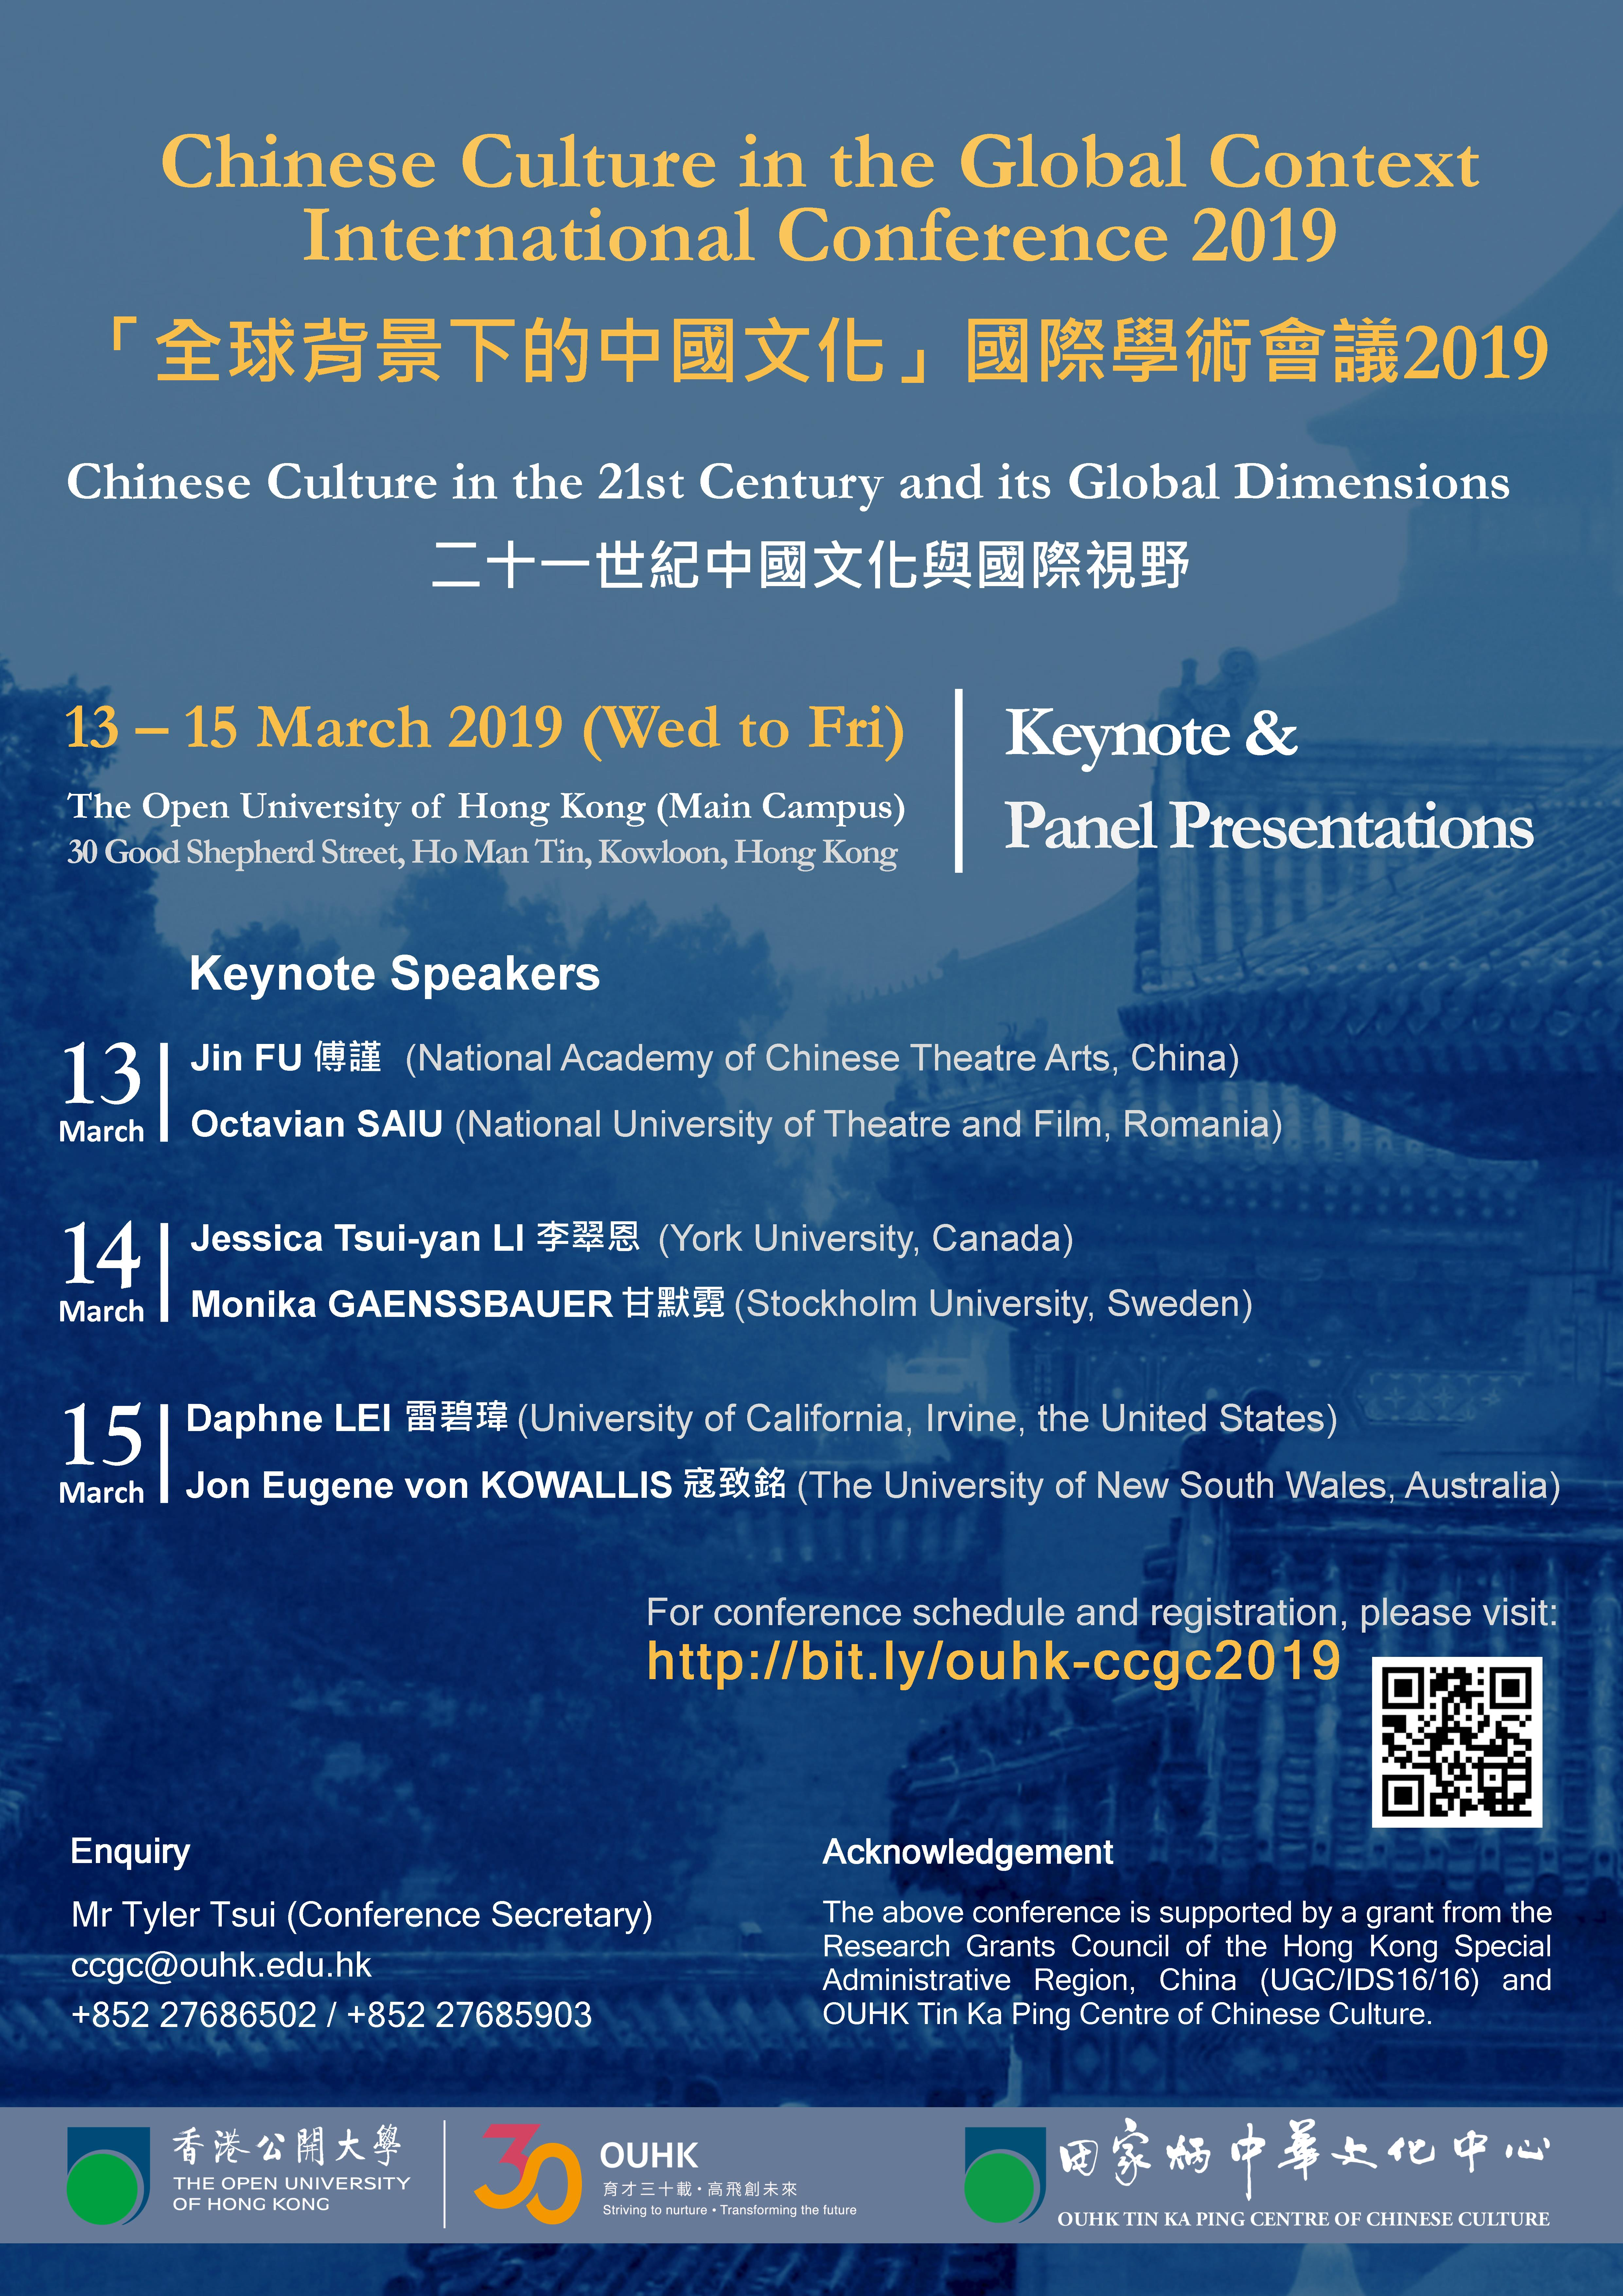 Conference | The Open University of Hong Kong